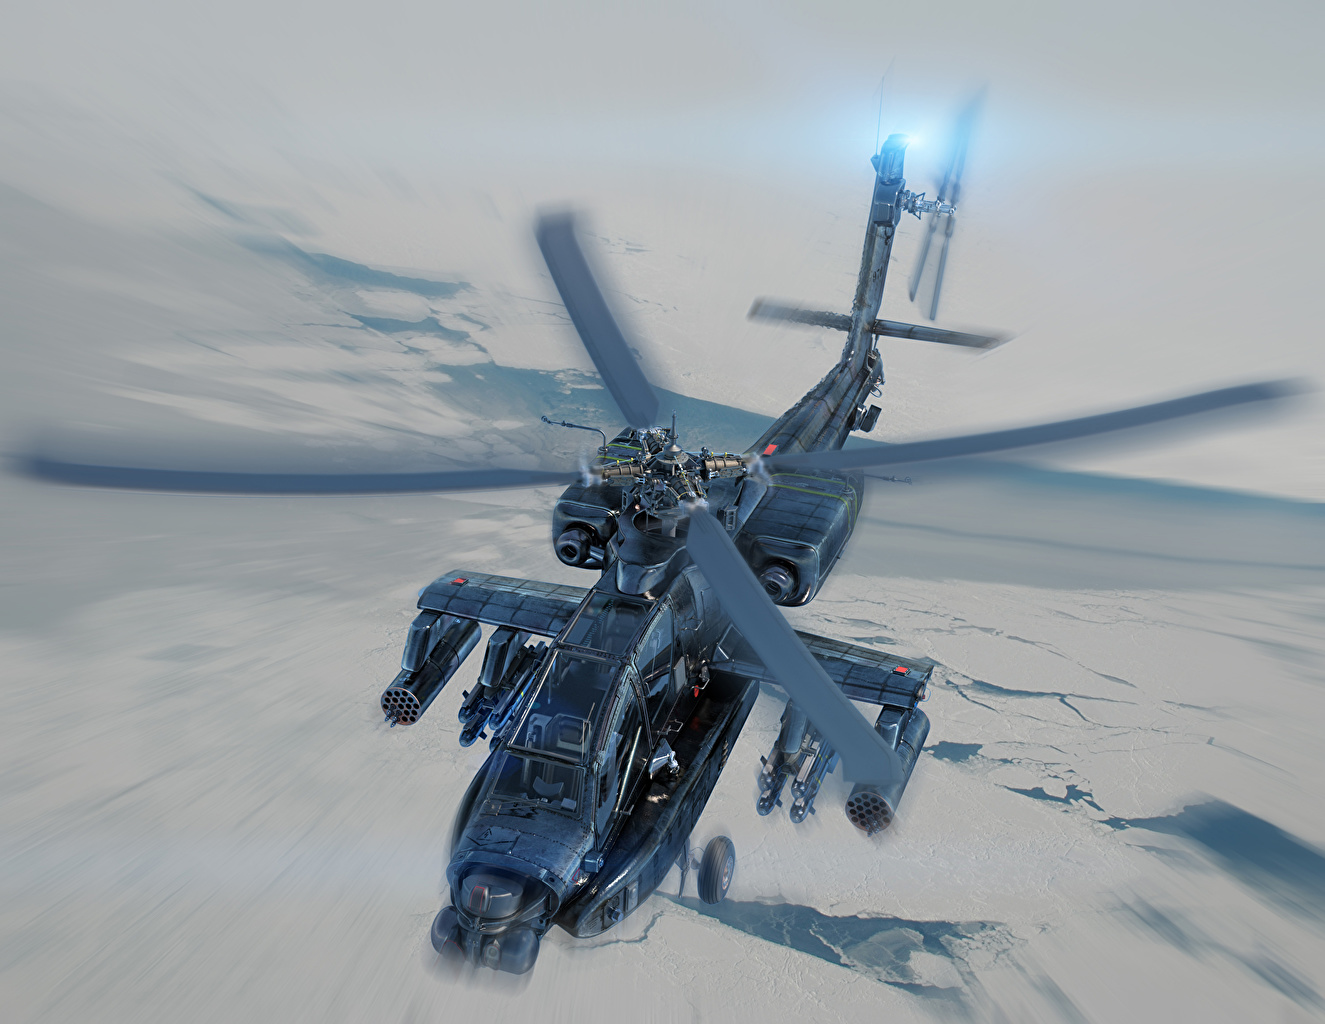 Desktop Wallpapers Aviation Helicopters Longbow Painting Art AH-64 Apache helicopter